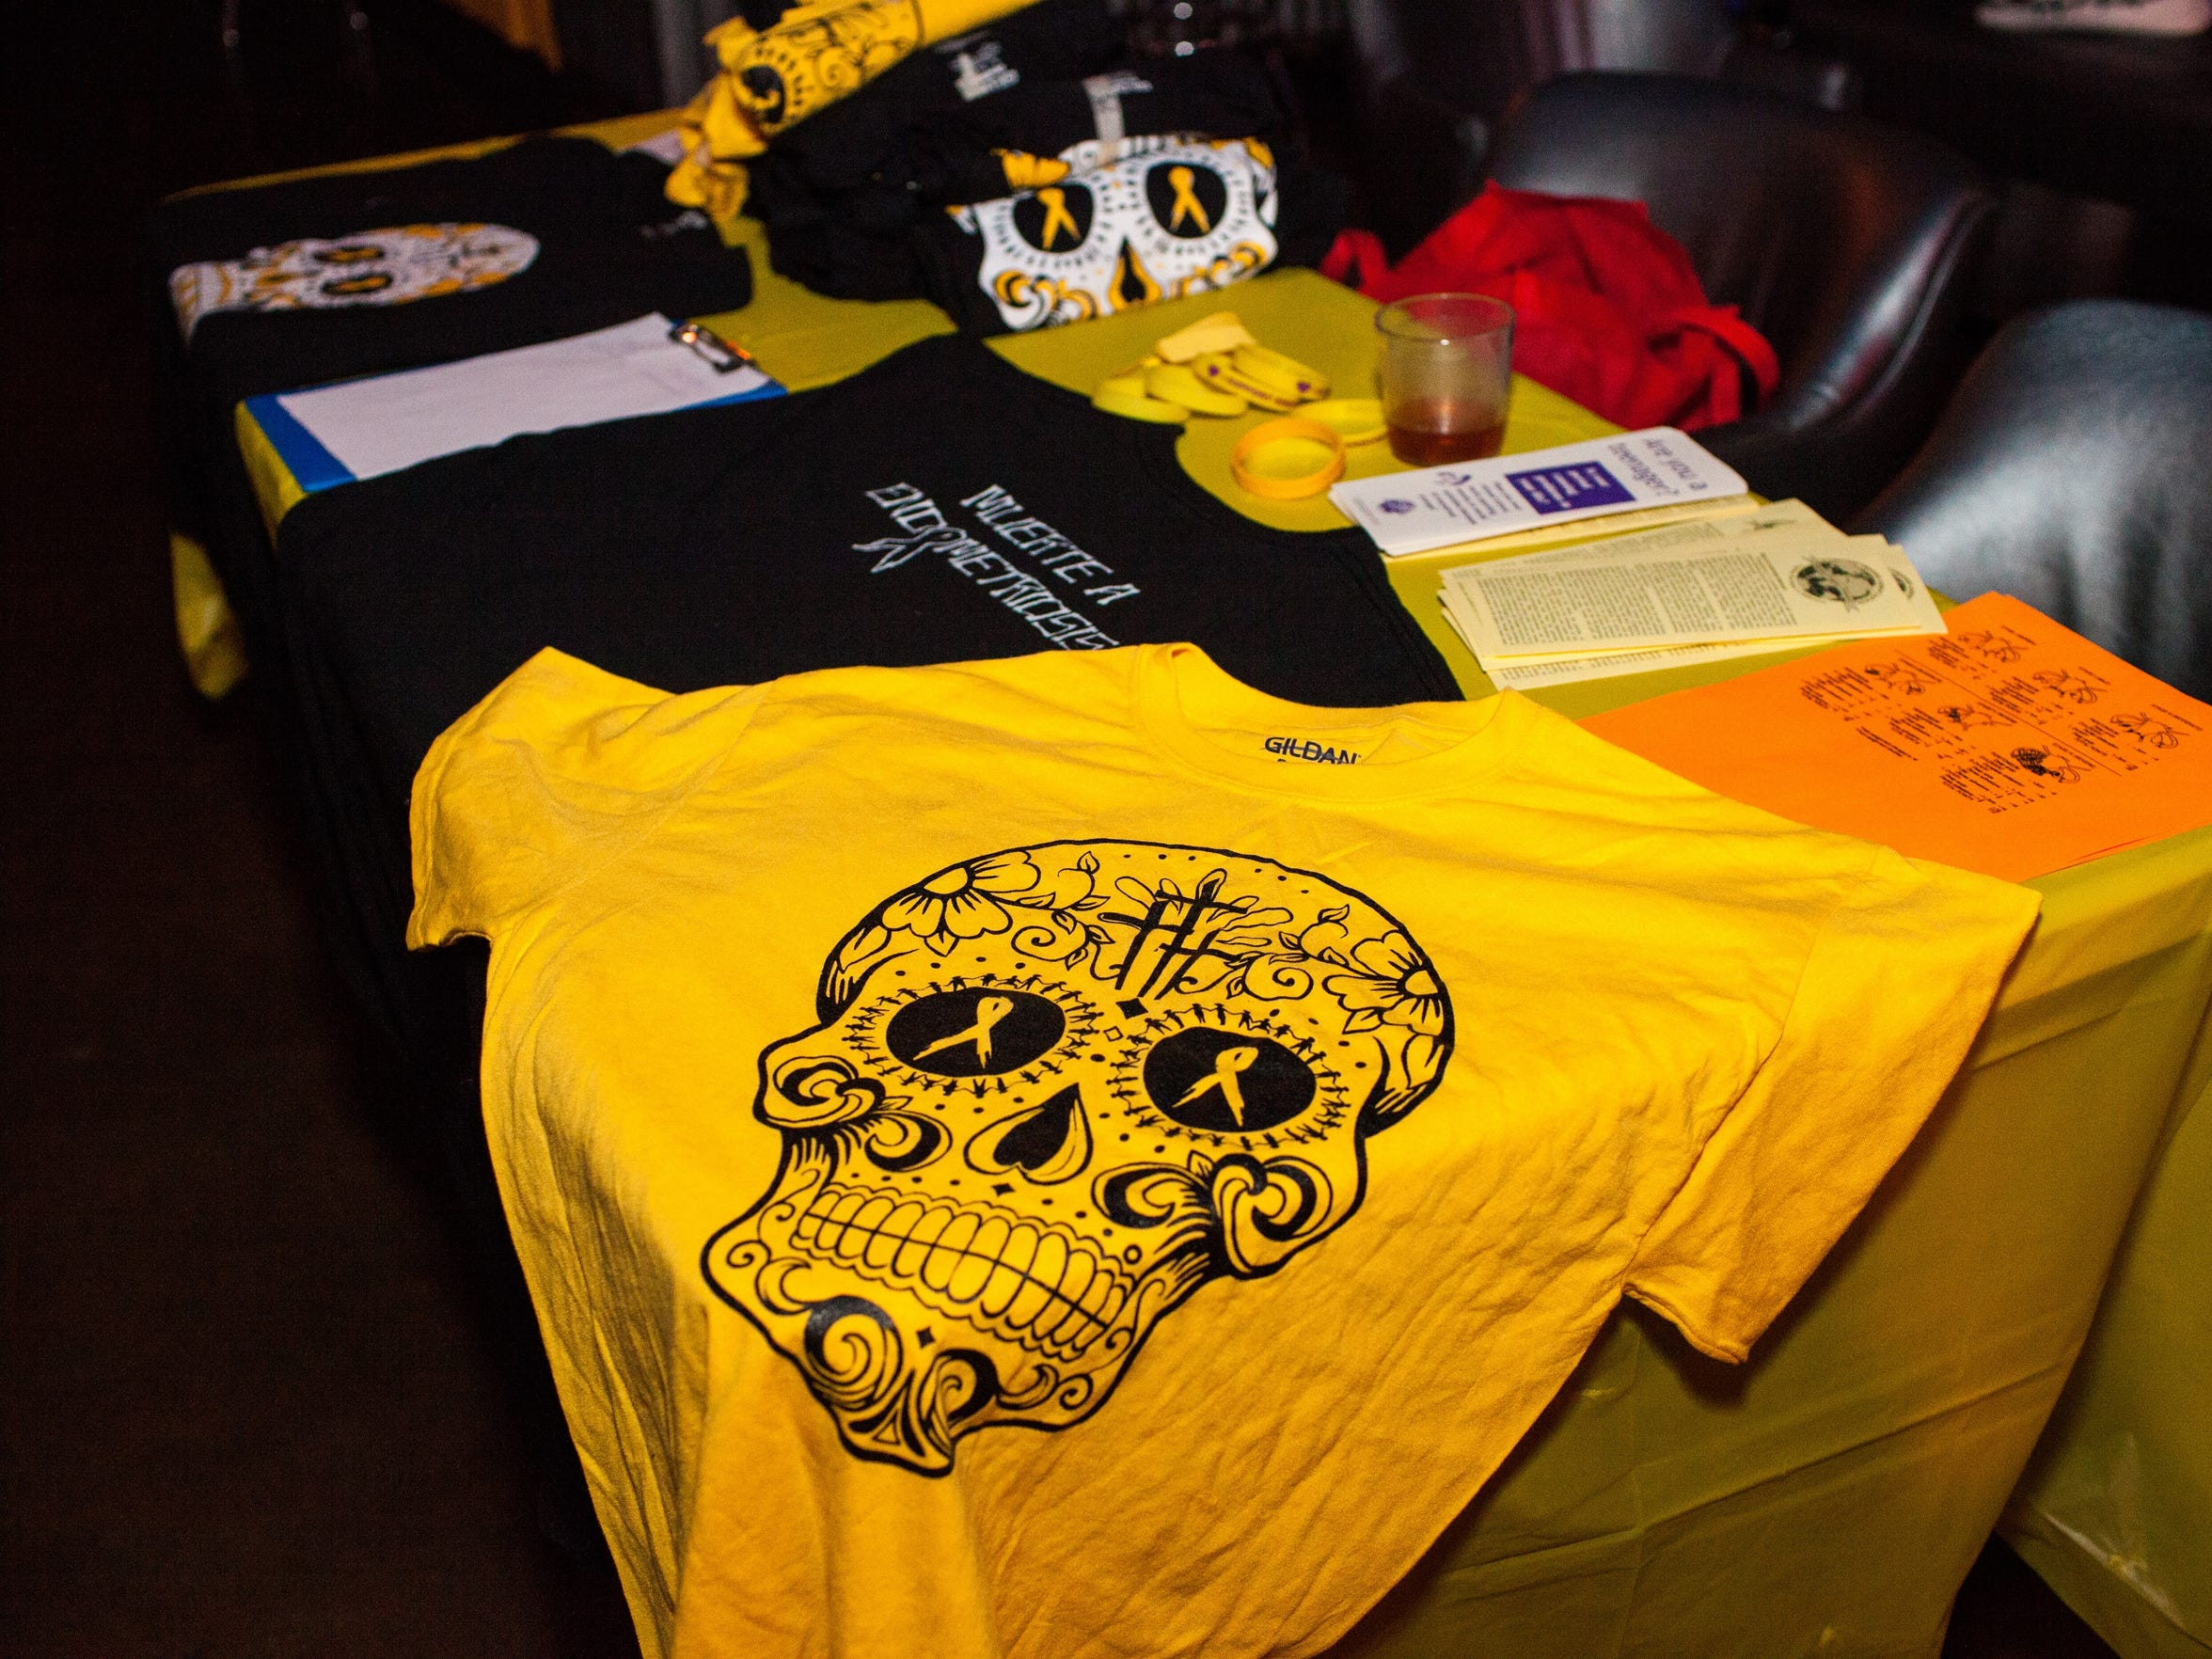 Shirts and merchandise on sale to raise funds for Team Doe for Endo at The Warehouse Bar.